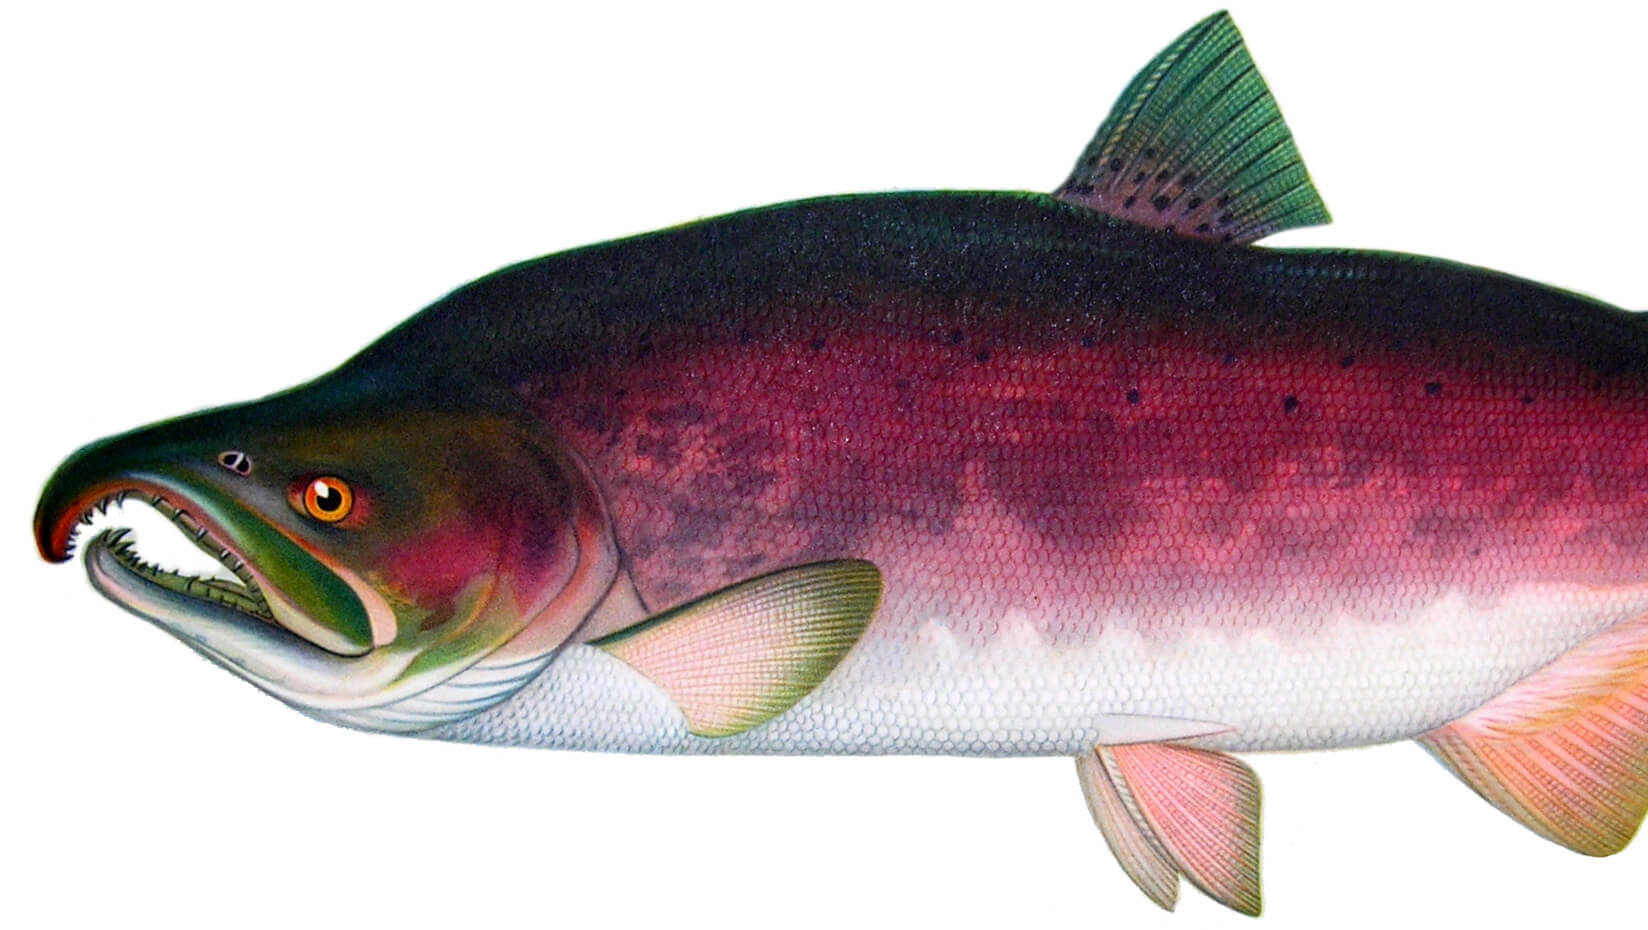 illustration of a salmon that is almost ready to spawn